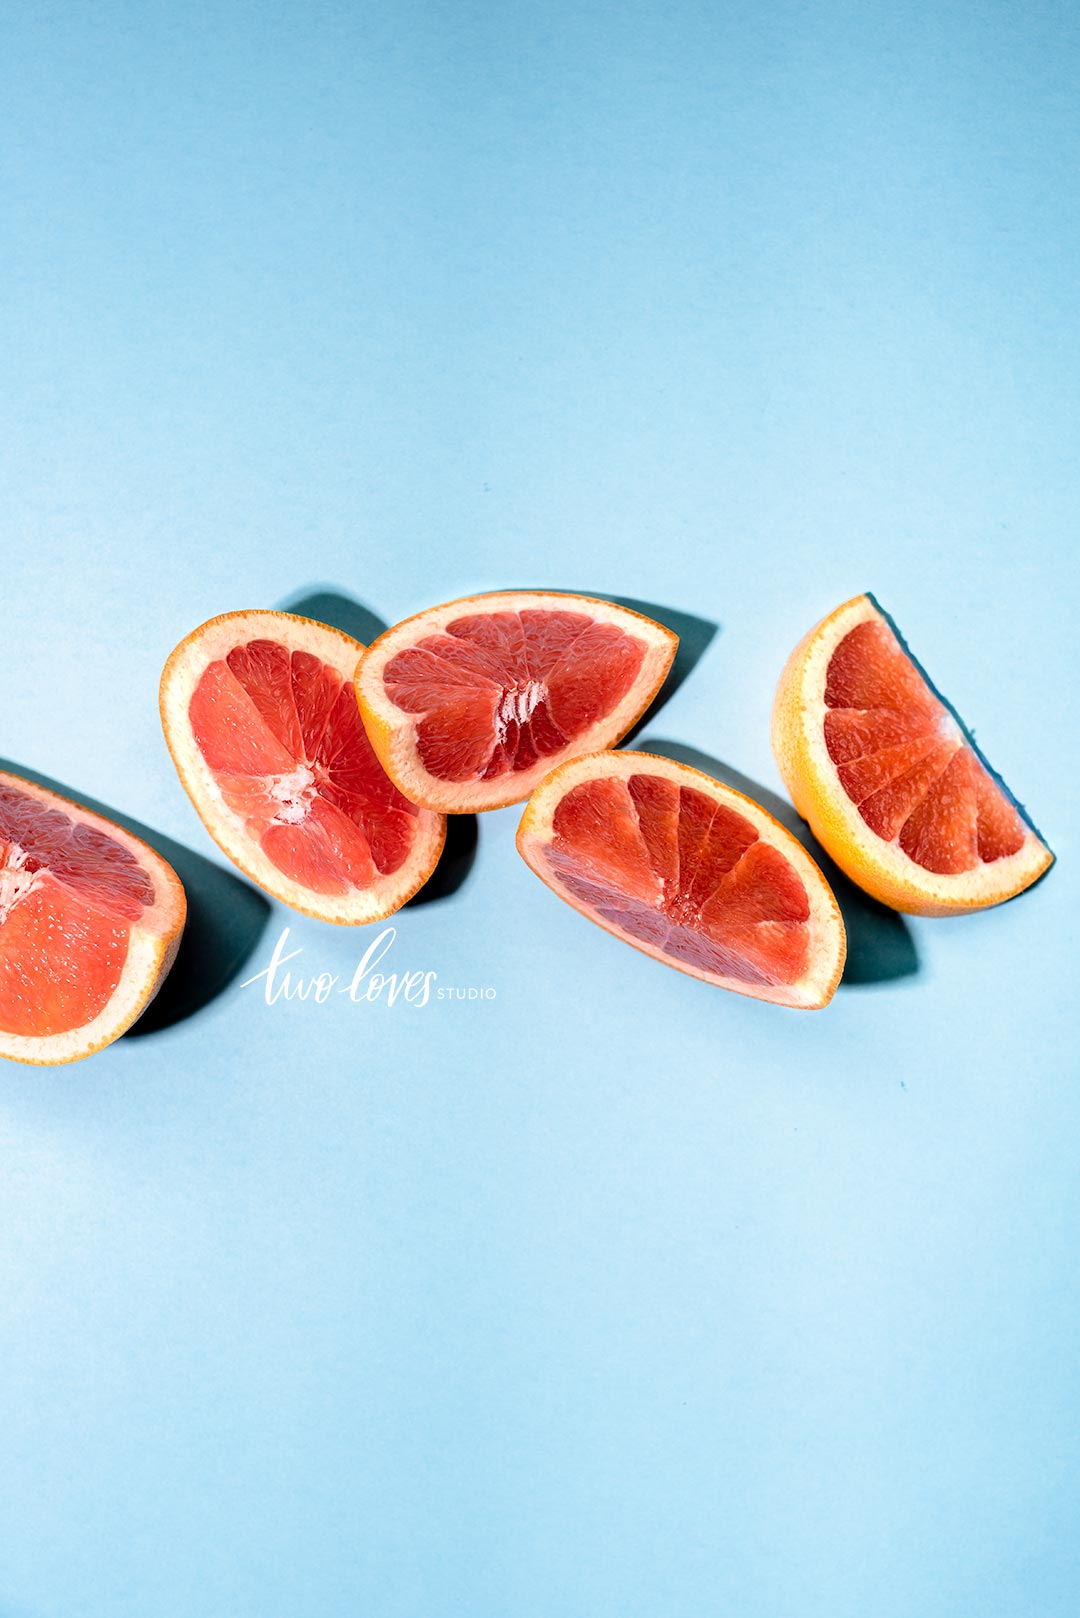 Oranges slices placed in an arrangement on a blue background.